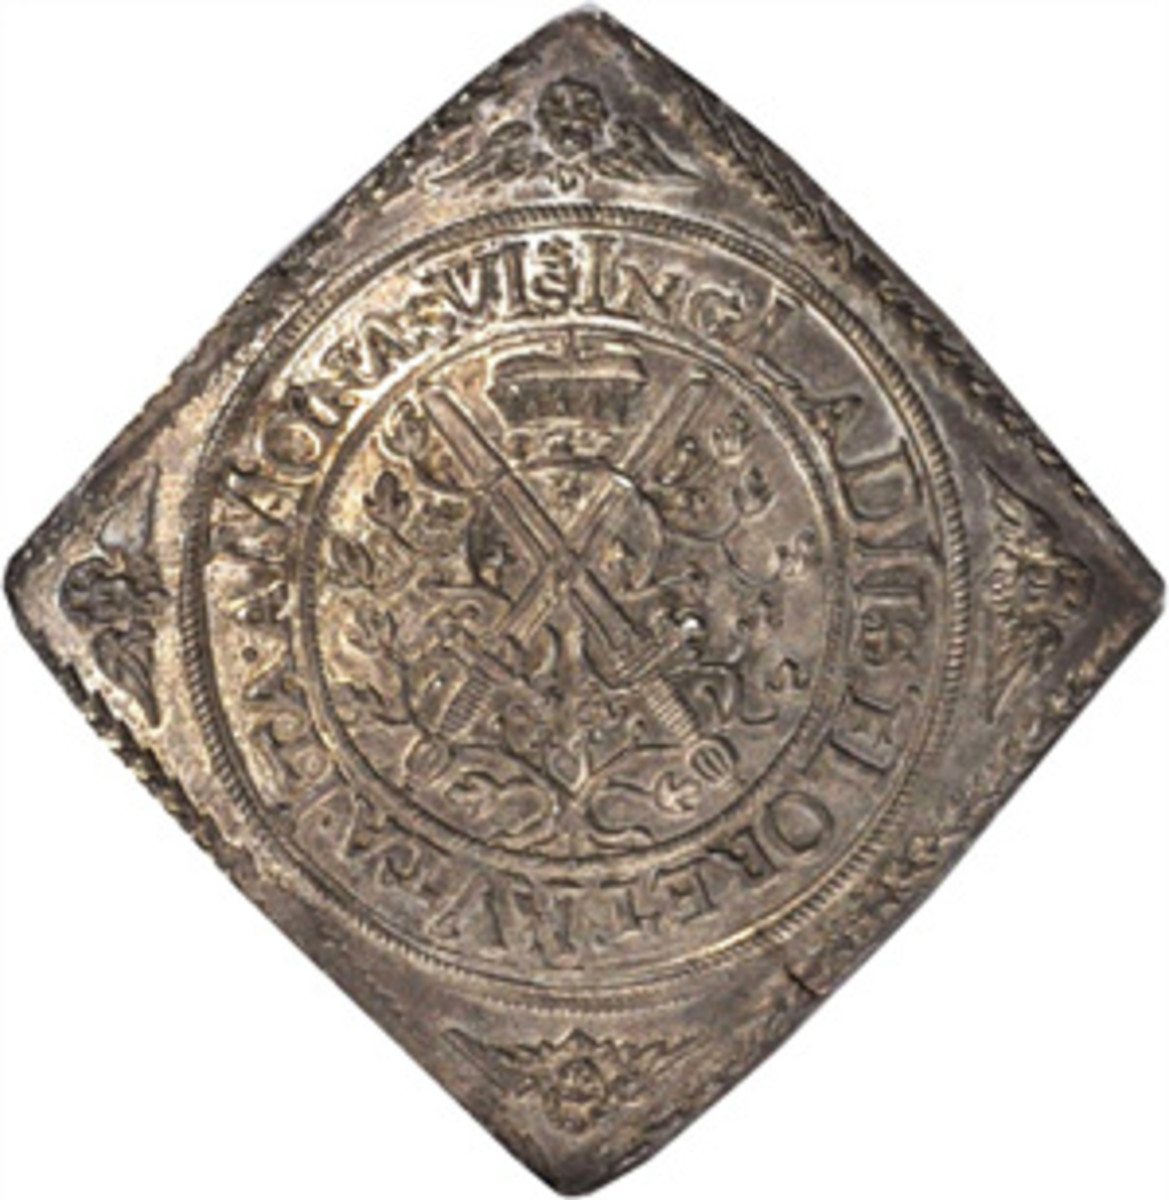 Klippe of Saxony with chronogram date in legend MDLLVVIIII = 1614. (Image courtesy Stack's Bowers)